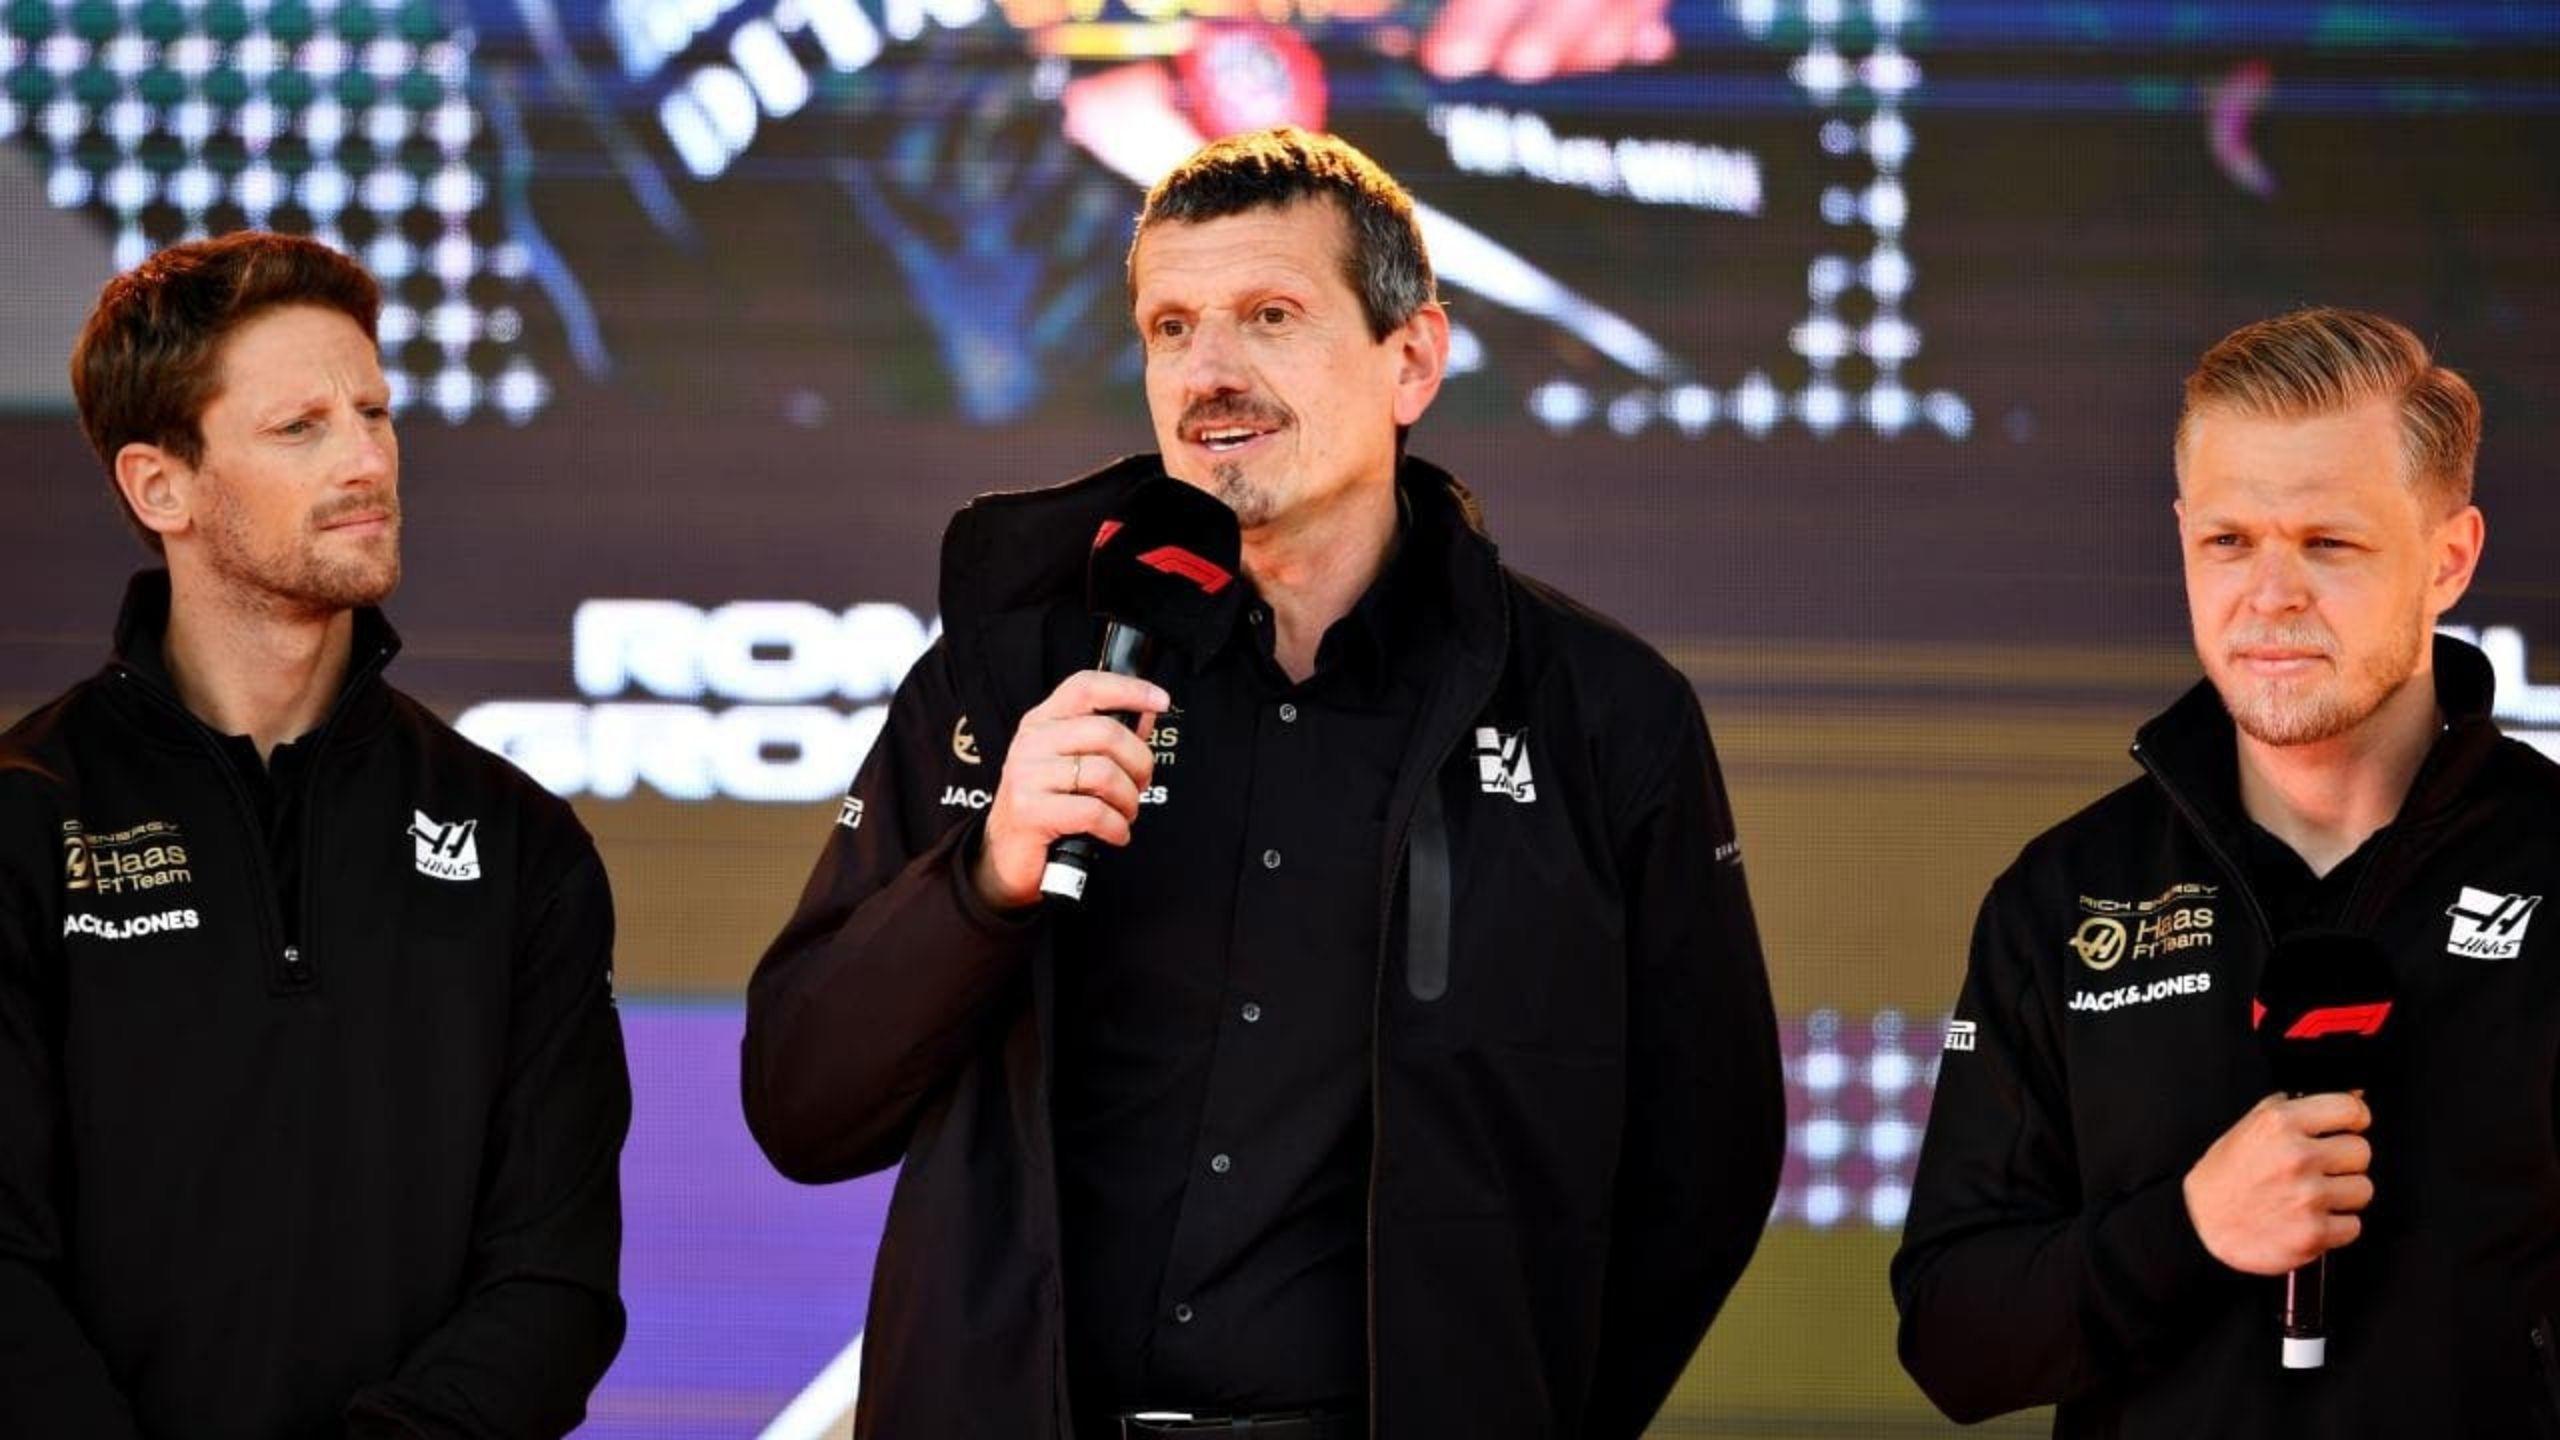 """""""You respect that because they are very difficult to get"""" - Haas F1 principal Guenther Steiner reveals 'special' parting gift he gave to Kevin Magnussen and Romain Grosjean"""